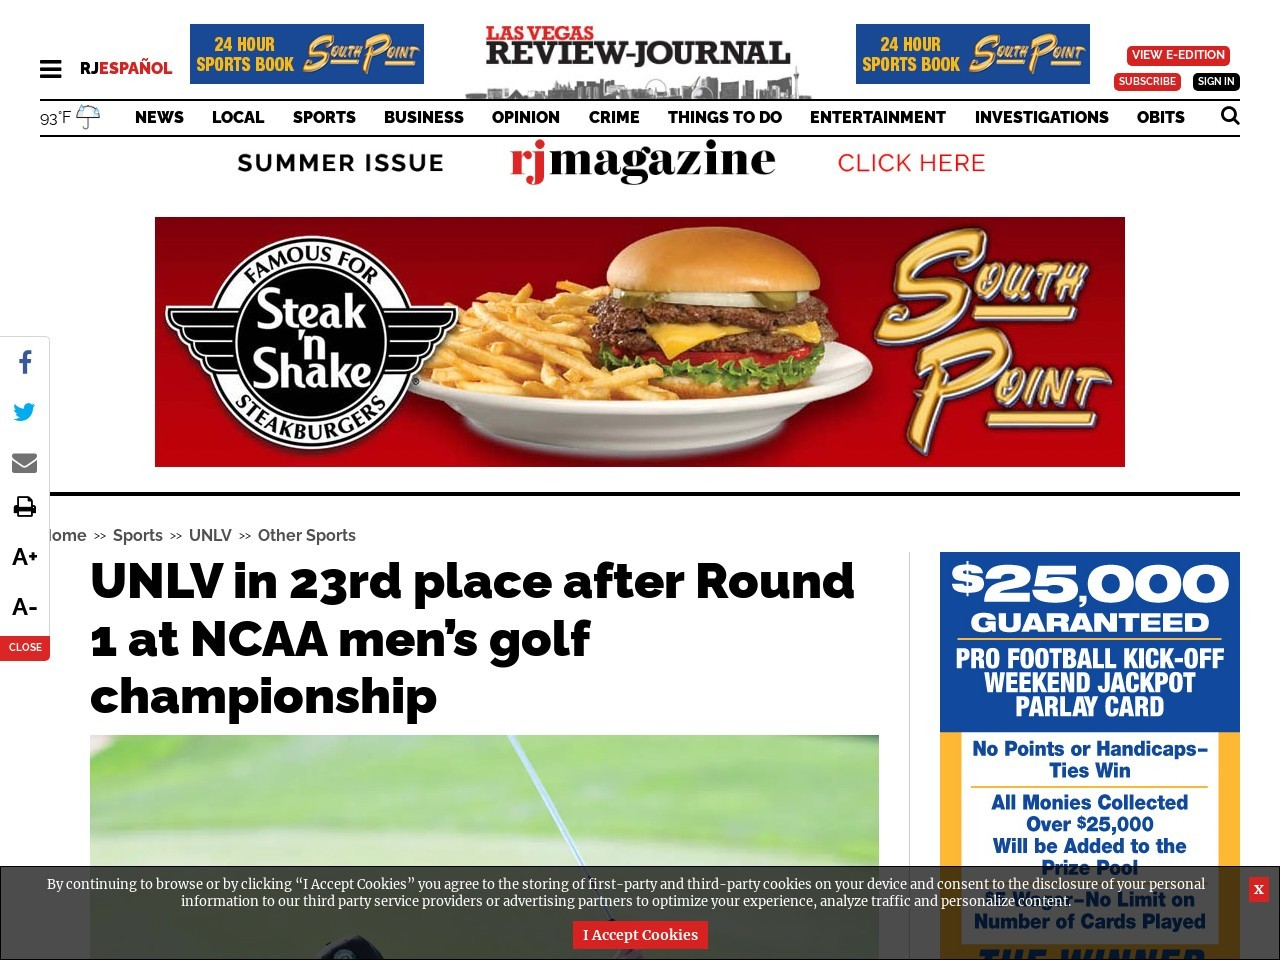 UNLV in 23rd place after Round 1 at NCAA men's golf championship